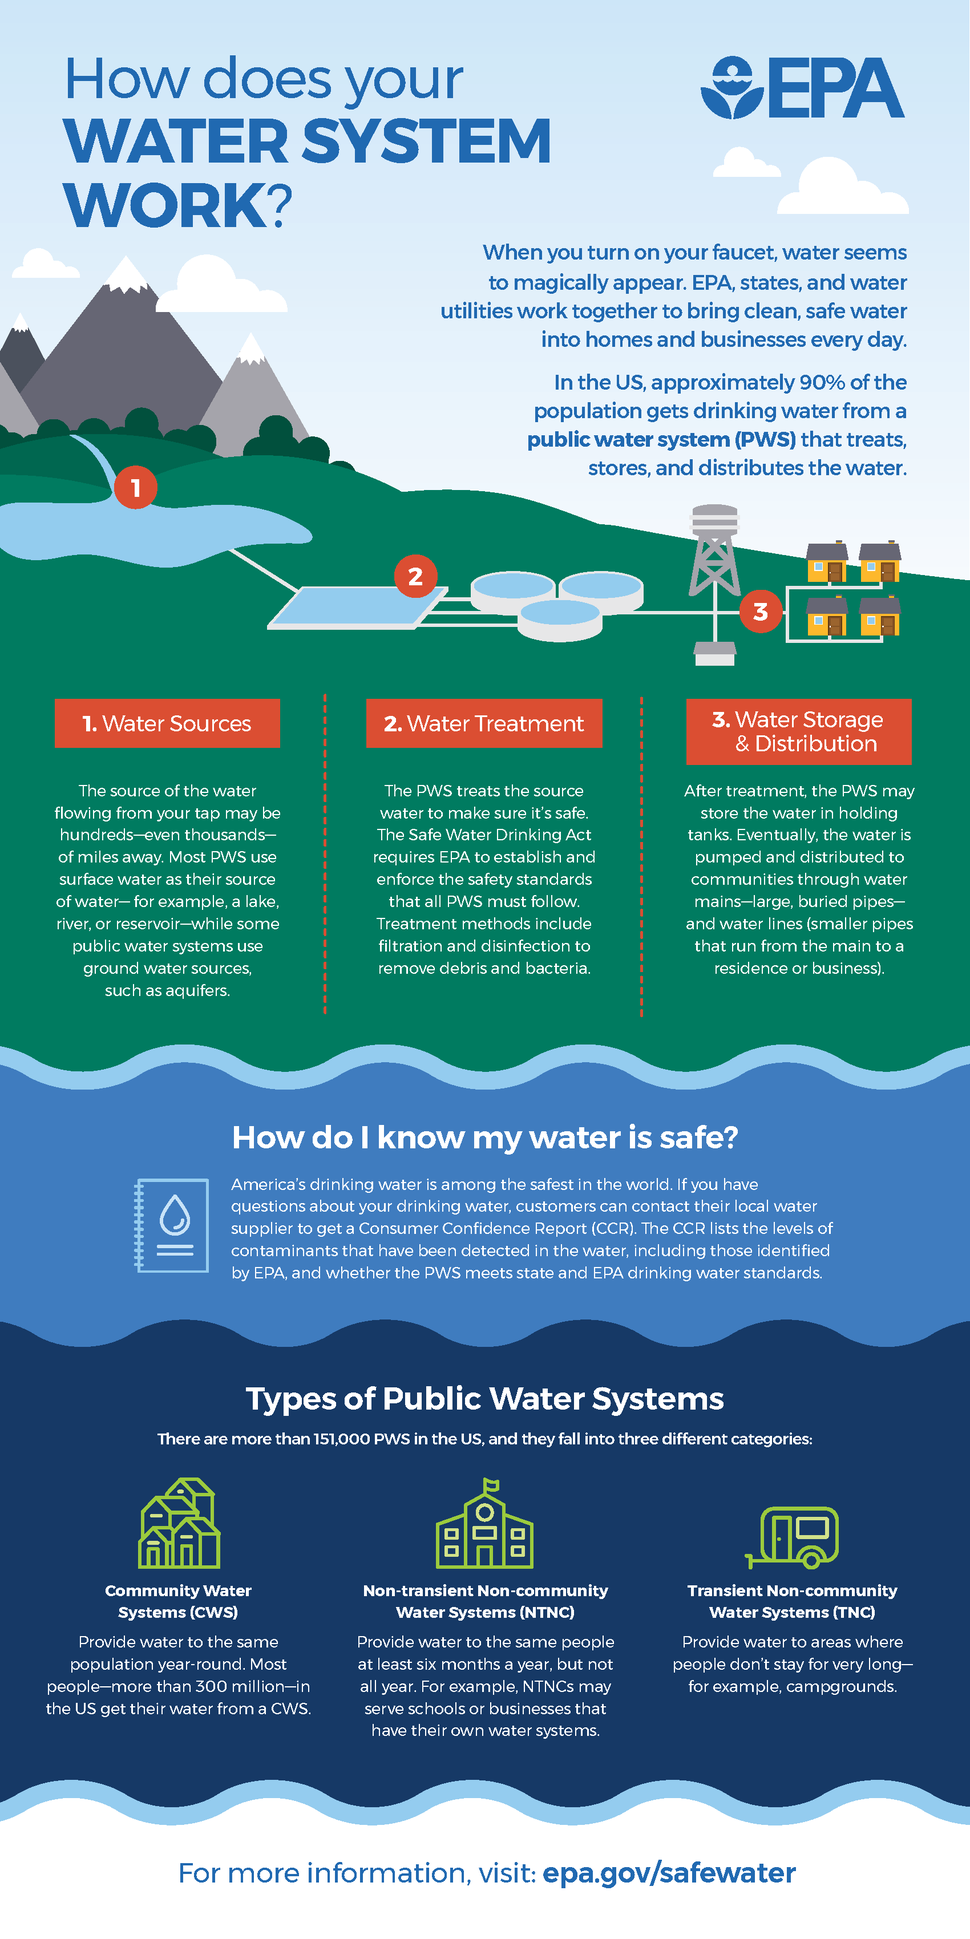 How Does Your Water System Work - EPA 2017